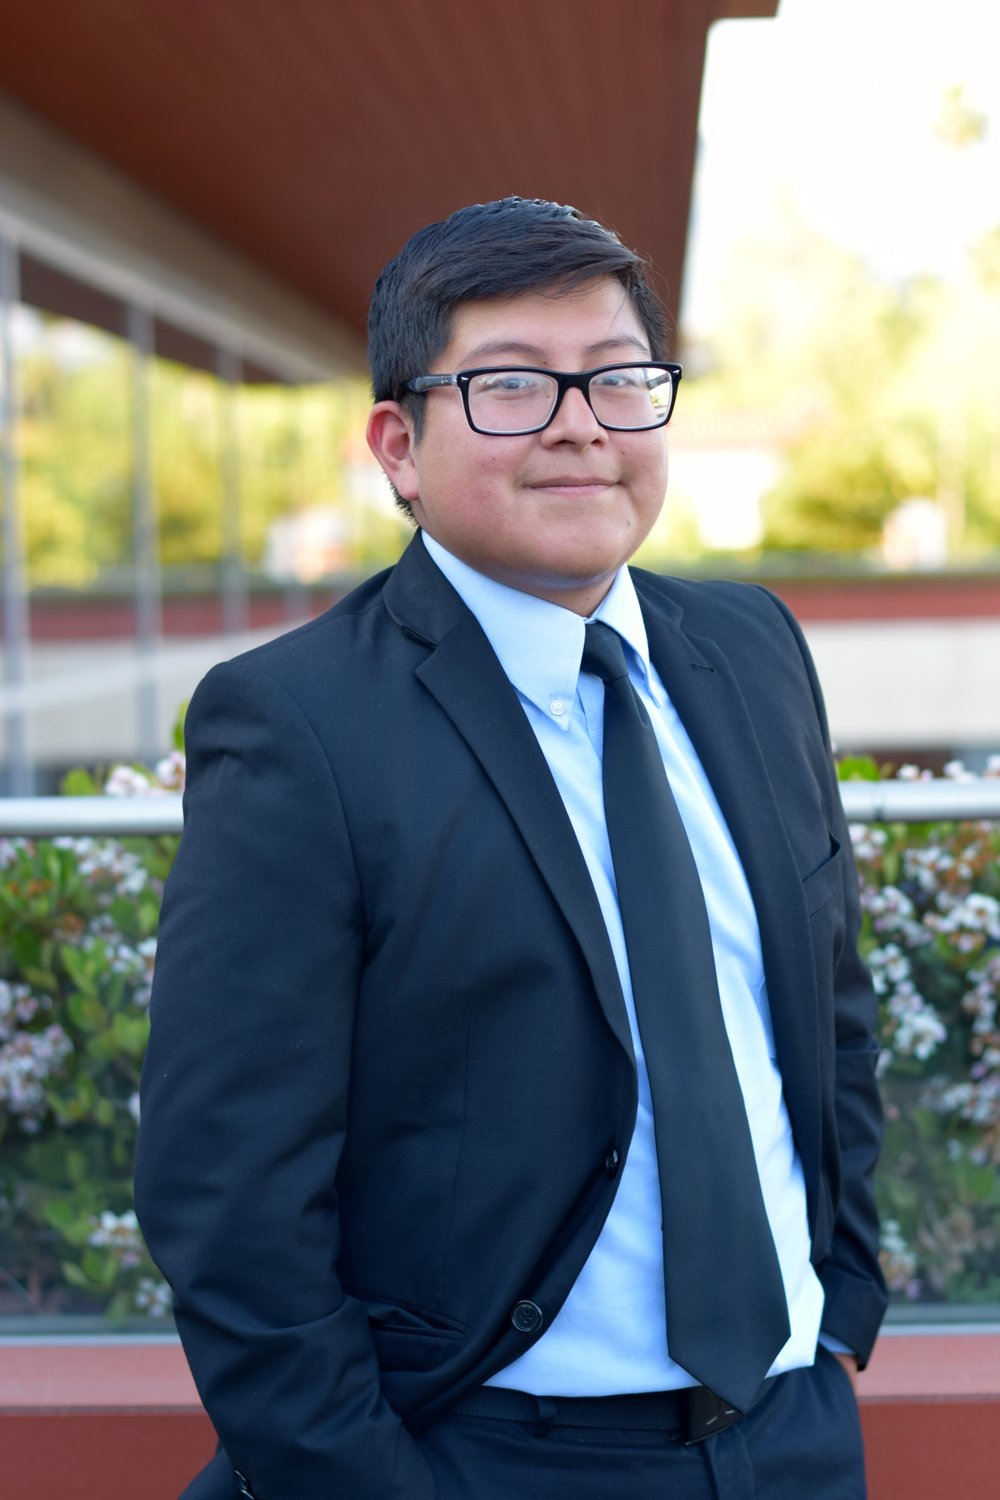 Julian Hernandez - Director of Student Security